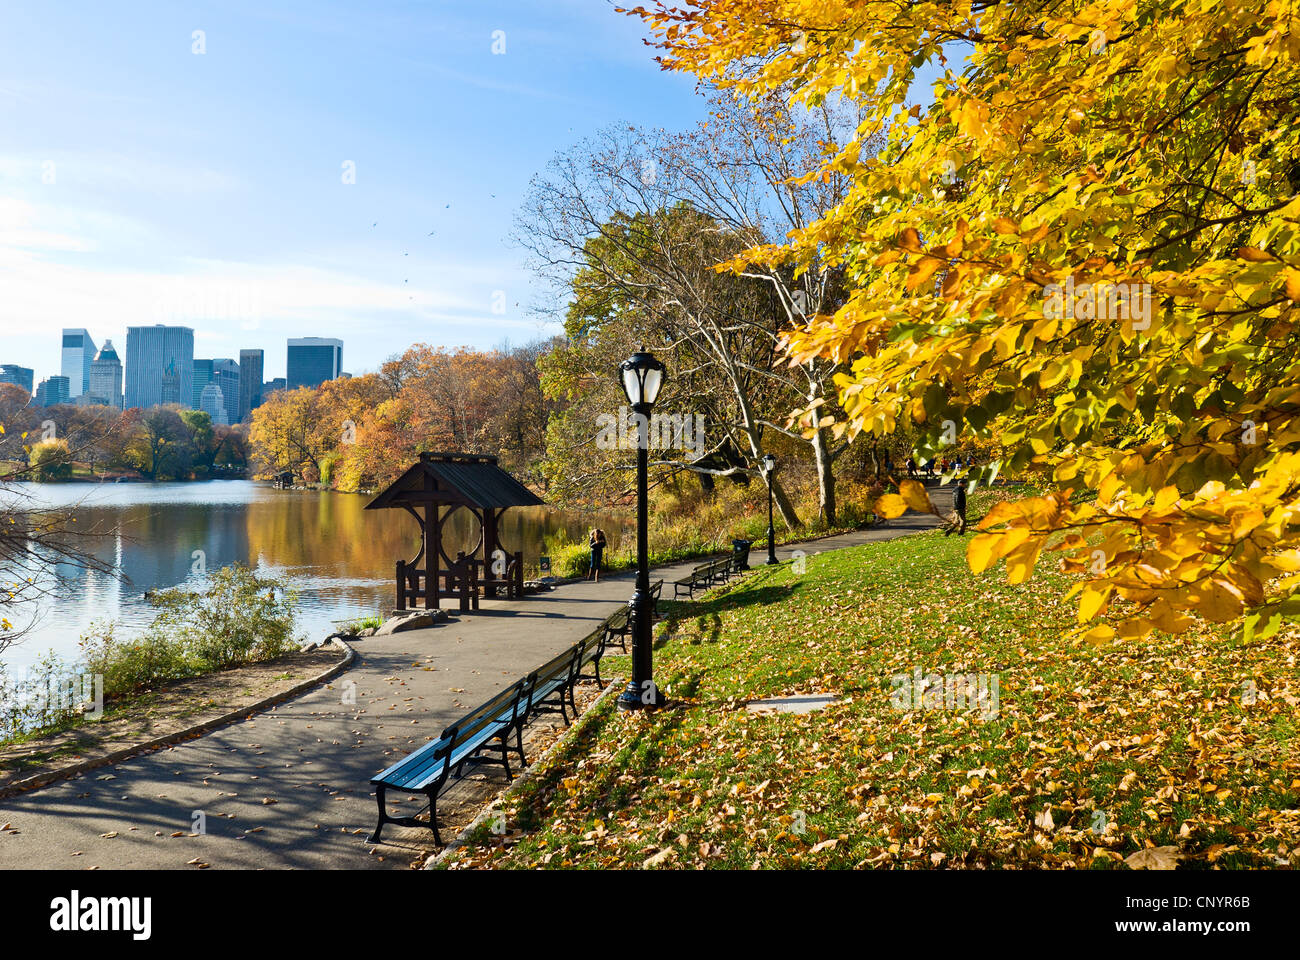 Fall leaves at the Lake in Central Park, New York City in Autumn - Stock Image